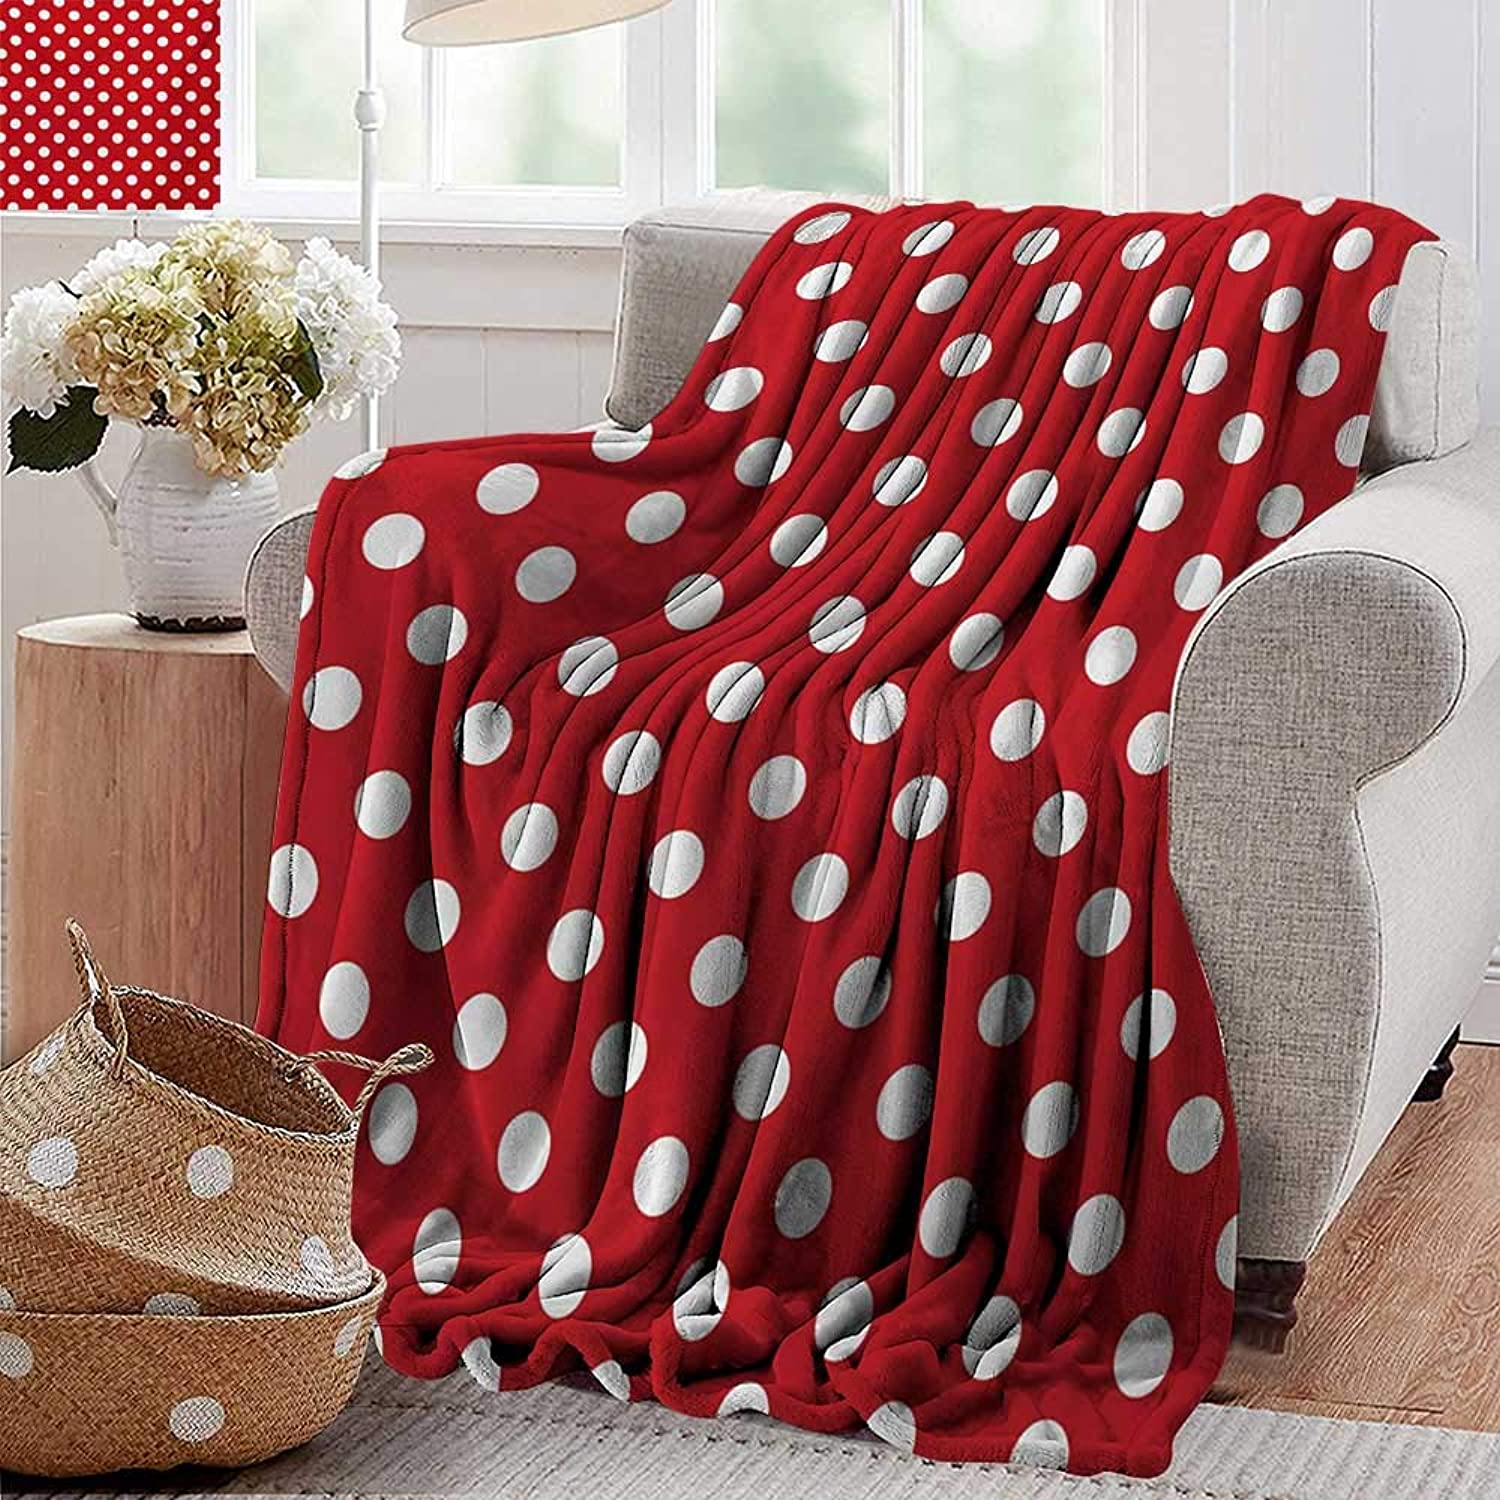 PearlRolan Picnic Blanket,Retro,Vintage Polka Dots with Big White Circular Round Forms Nostalgic Girlish Kitsch Art Design,Red,colorful   Home, Couch, Outdoor, Travel Use 50 x60